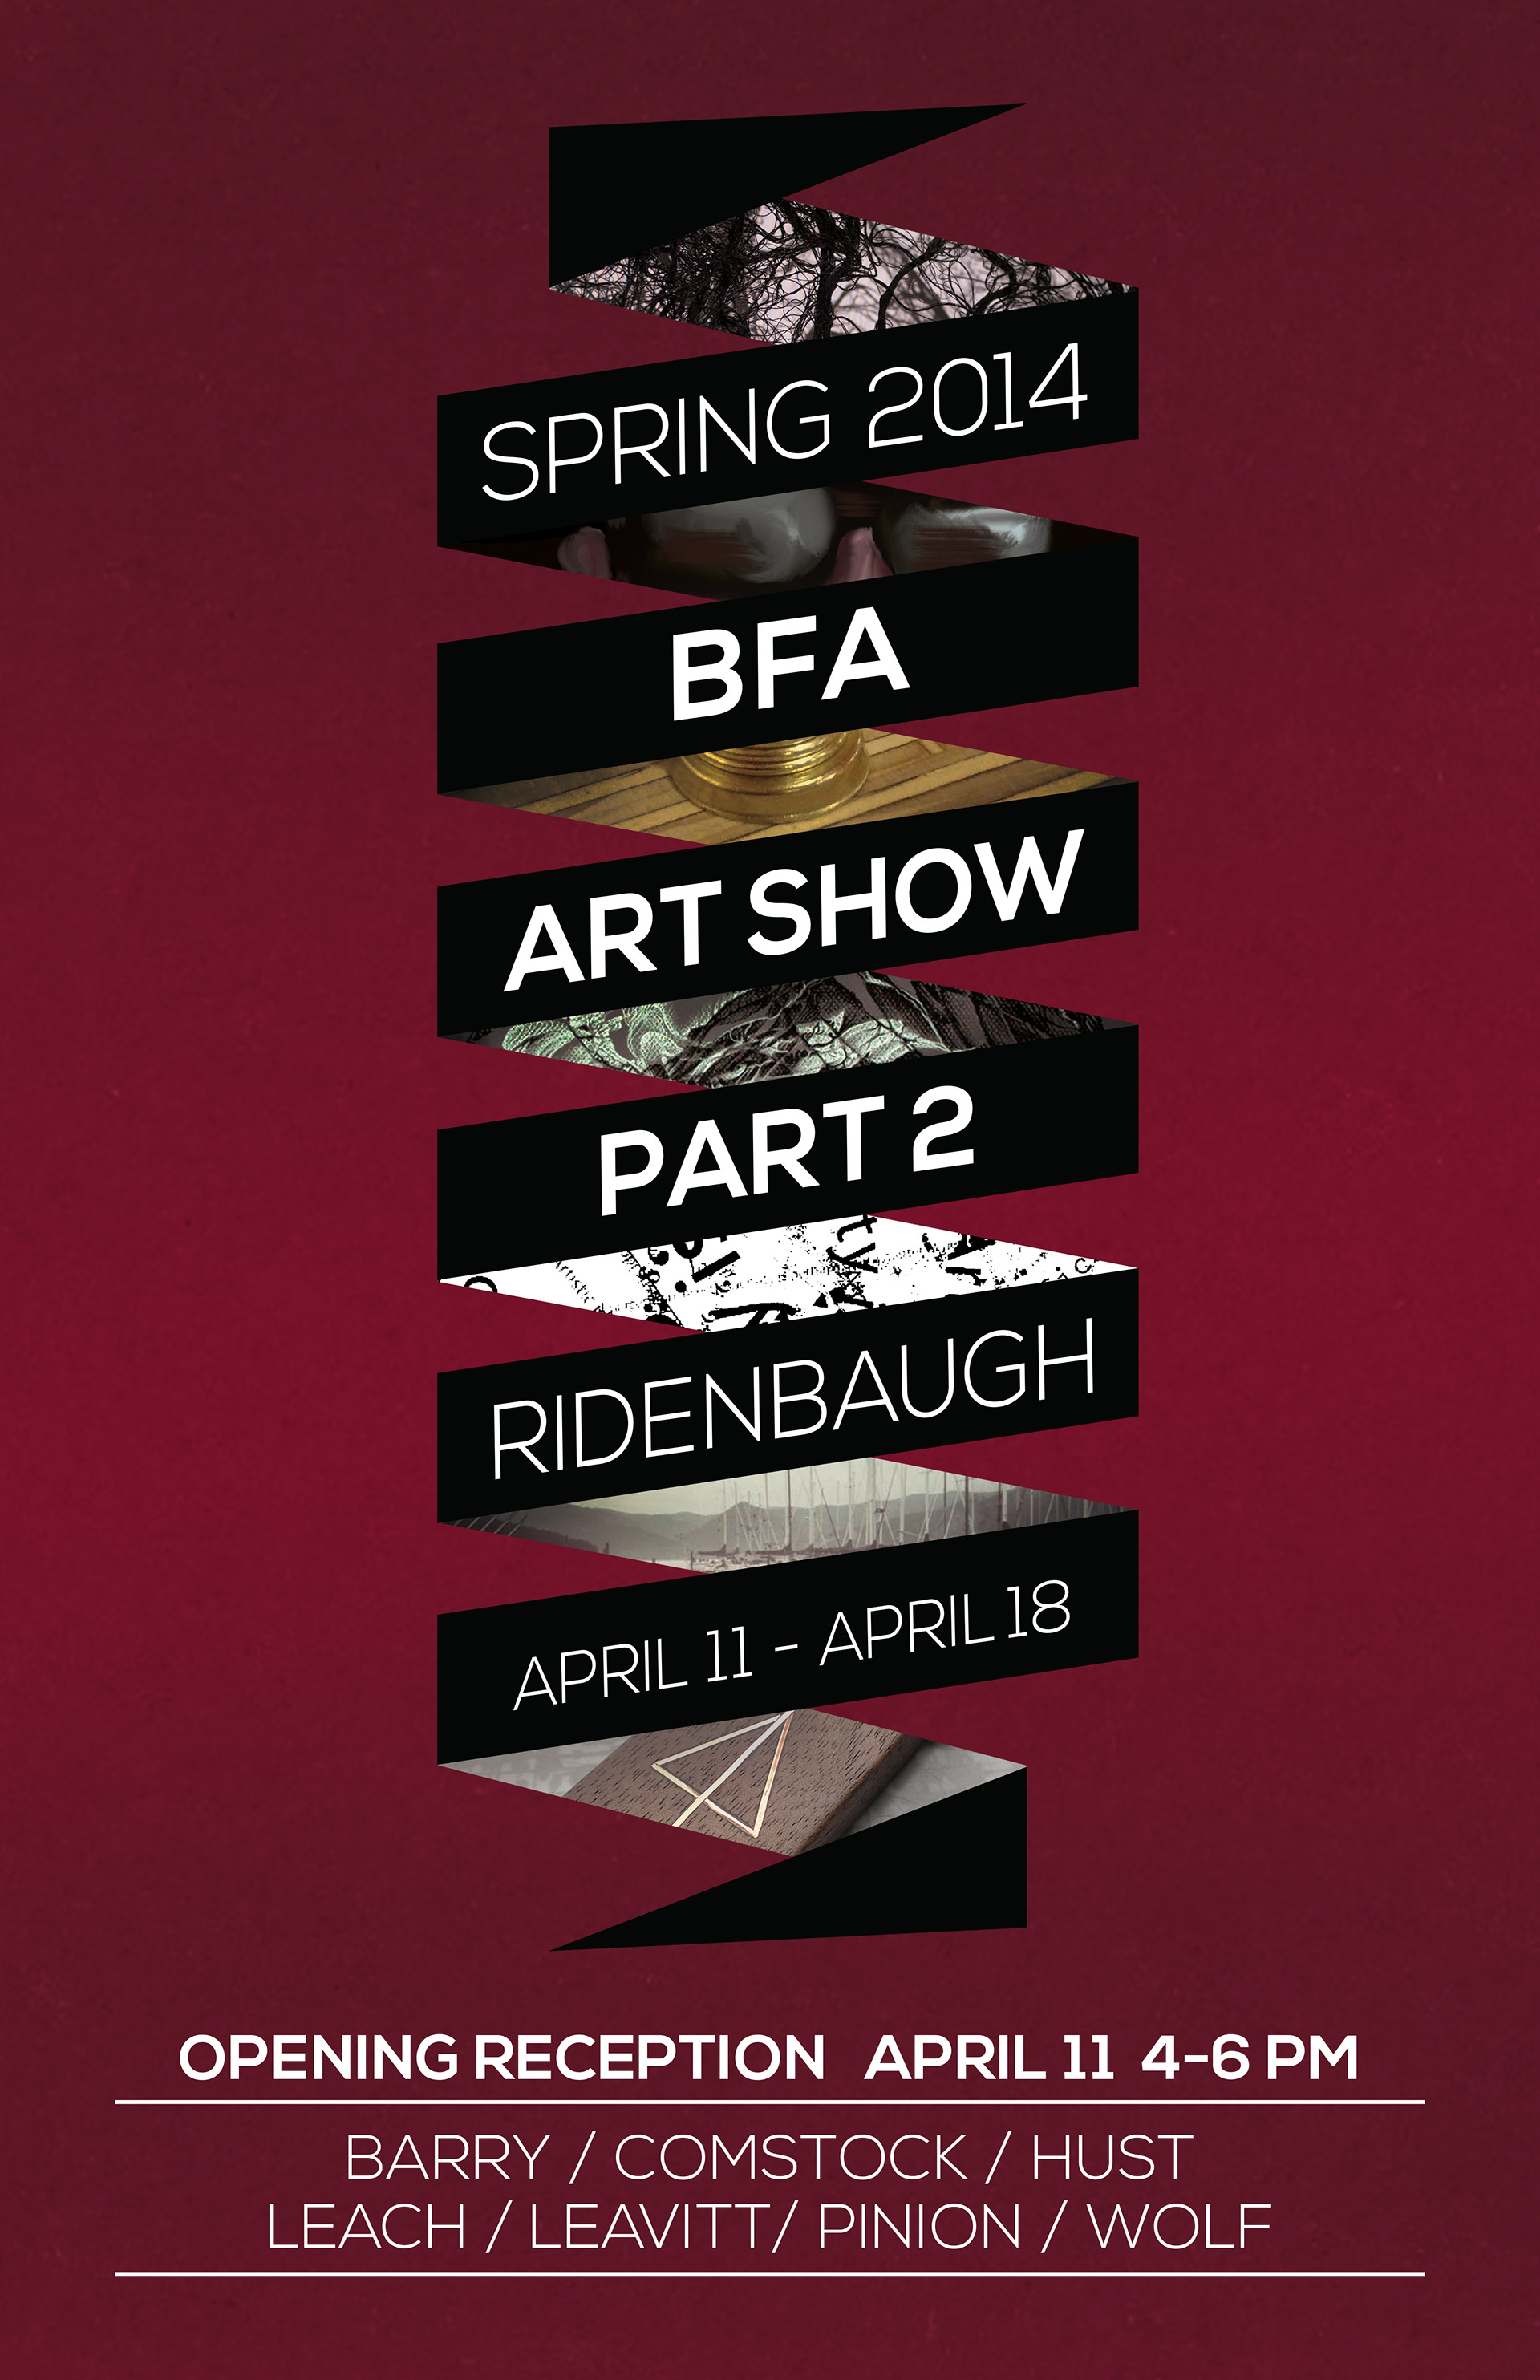 BFA Senior Show Poster Two Versions For Separate Shows